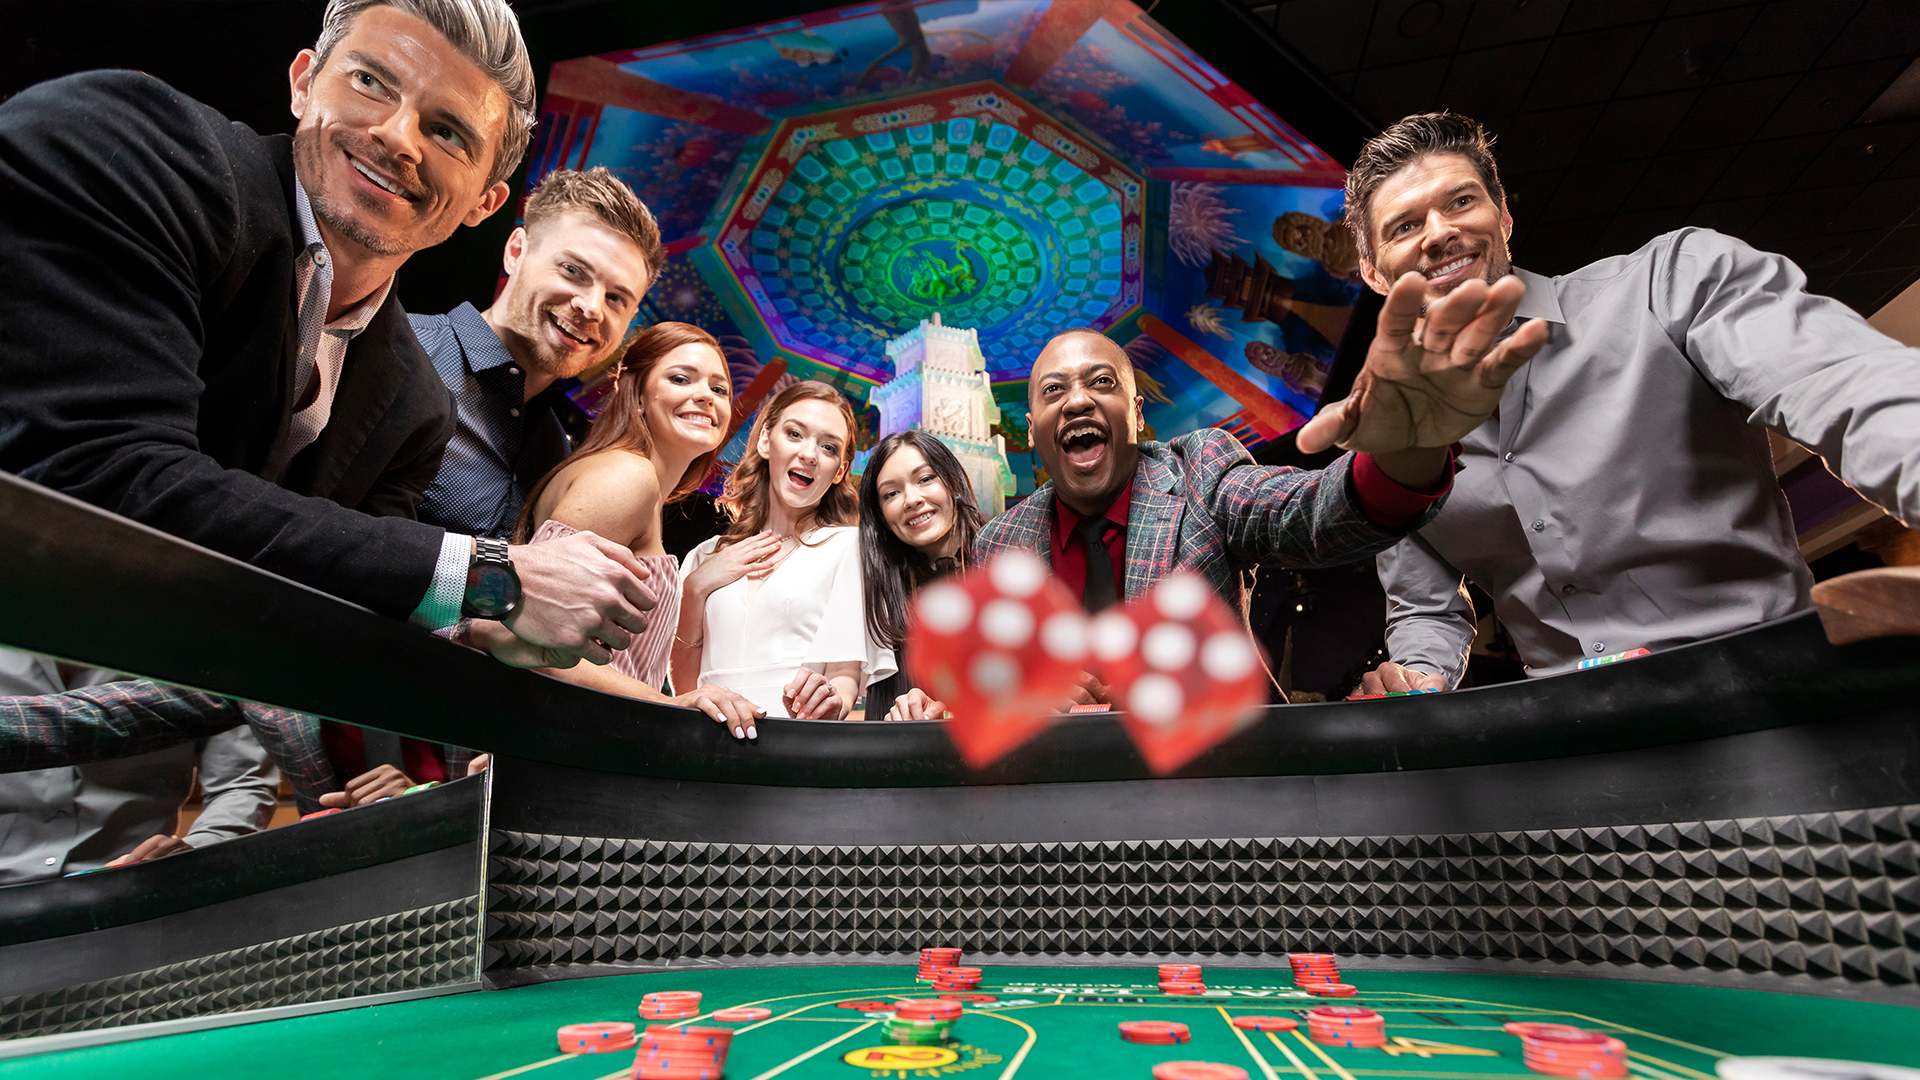 Table Games - WinStar